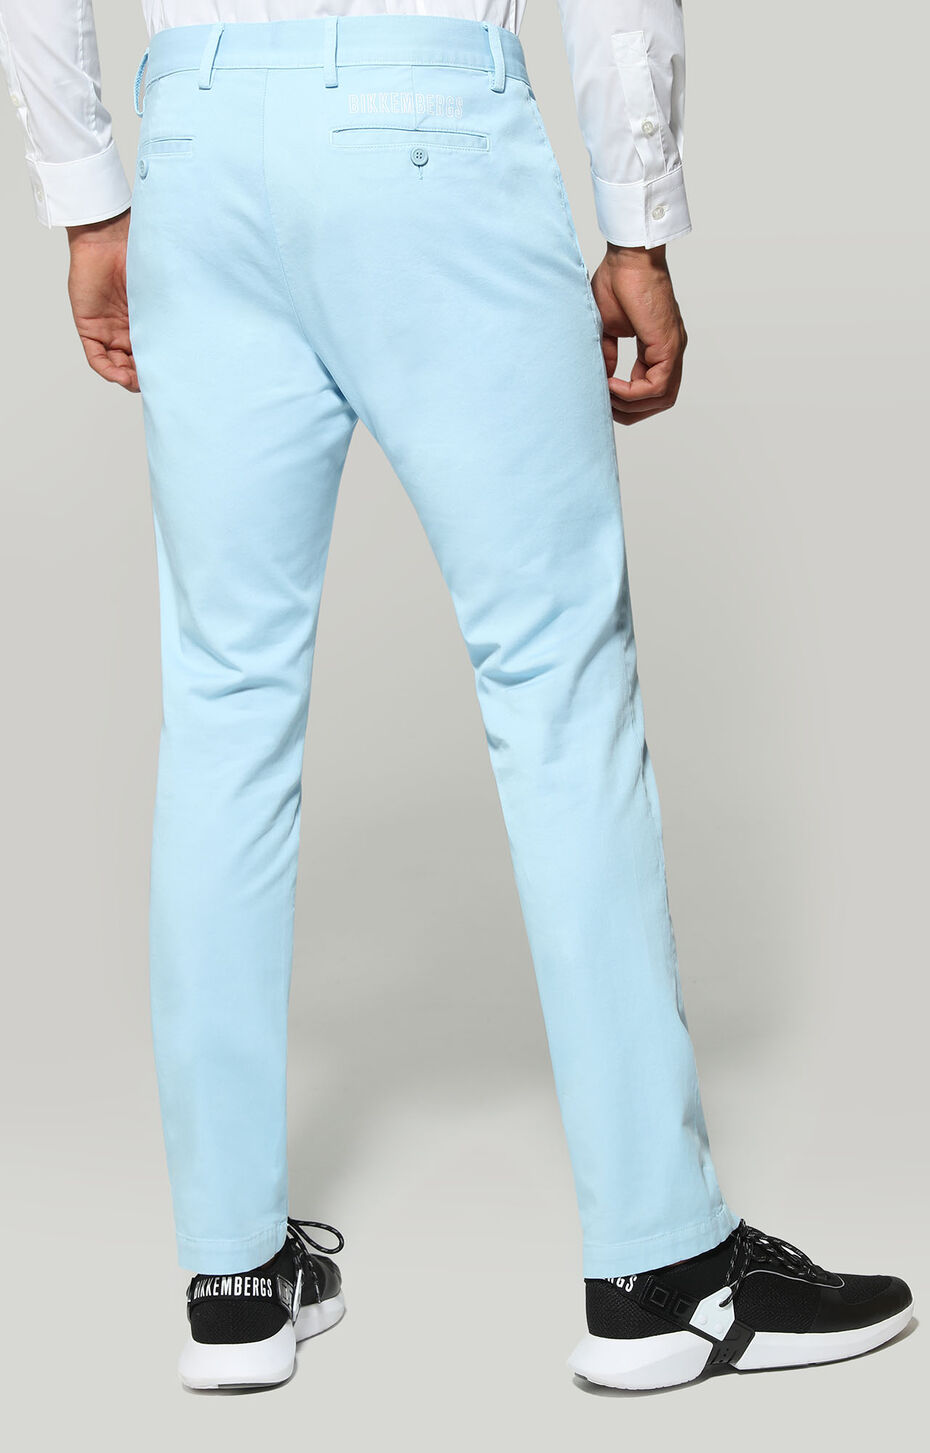 TROUSERS, BLUE, hi-res-1